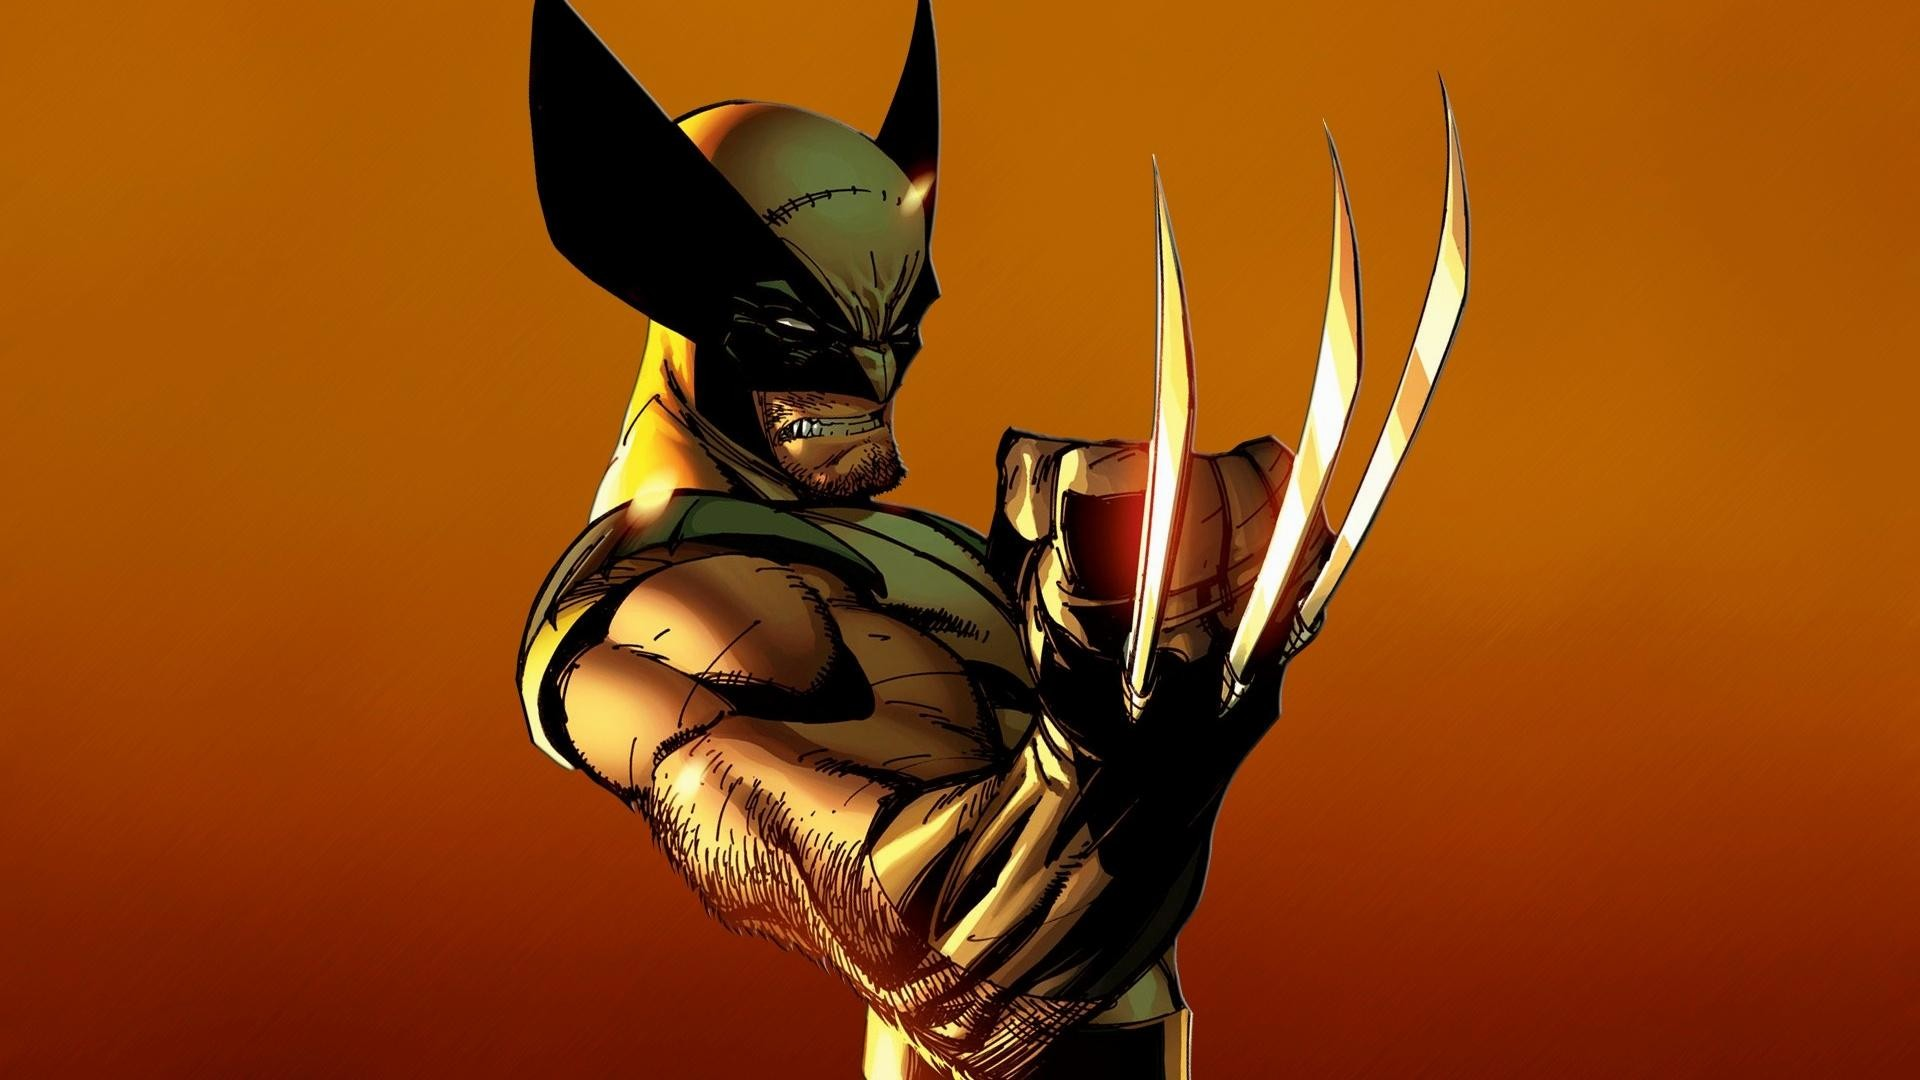 Wolverine Wallpapers HD Wallpaper 1024×768 Wolverine Images Wallpapers (47  Wallpapers) | Adorable